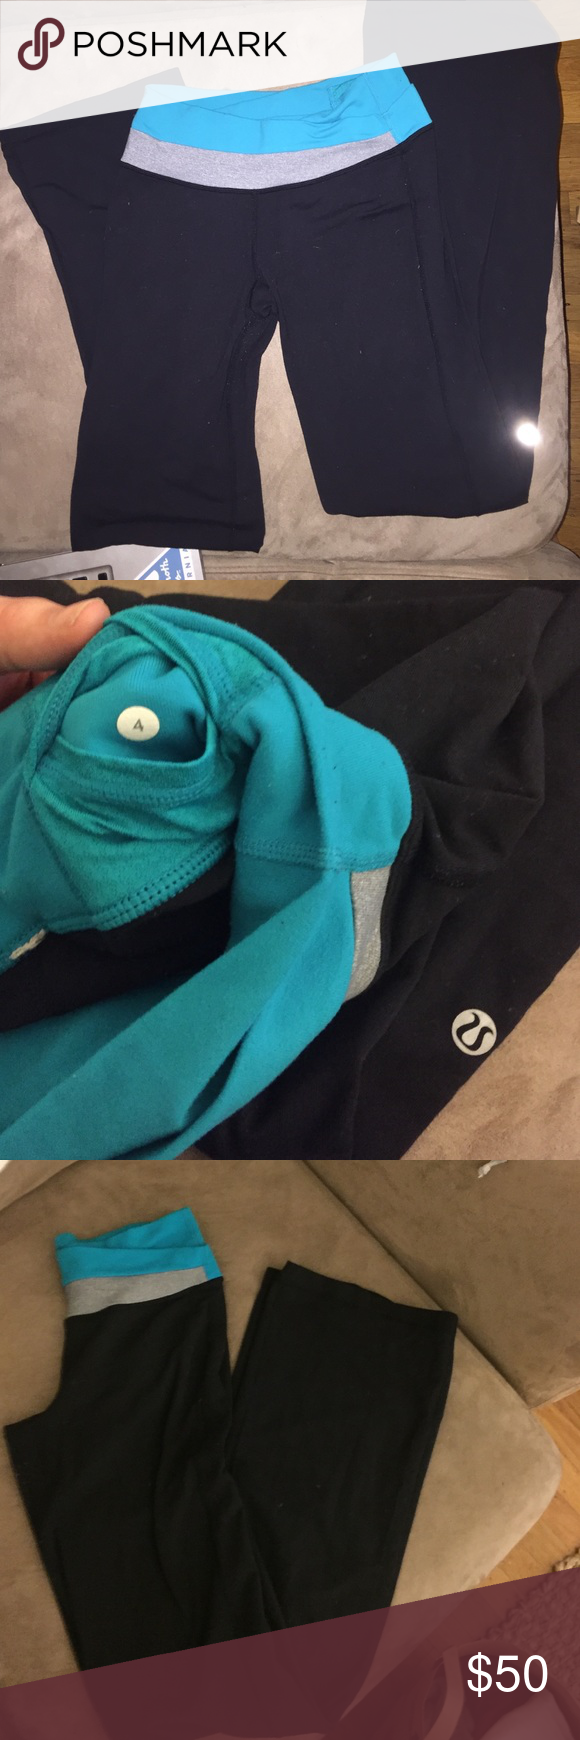 Lululemon Athletica Yoga Pants Size 4. Super cute waistband. Some pilling as usual with lulu leggings. Make me an offer ! lululemon athletica Pants